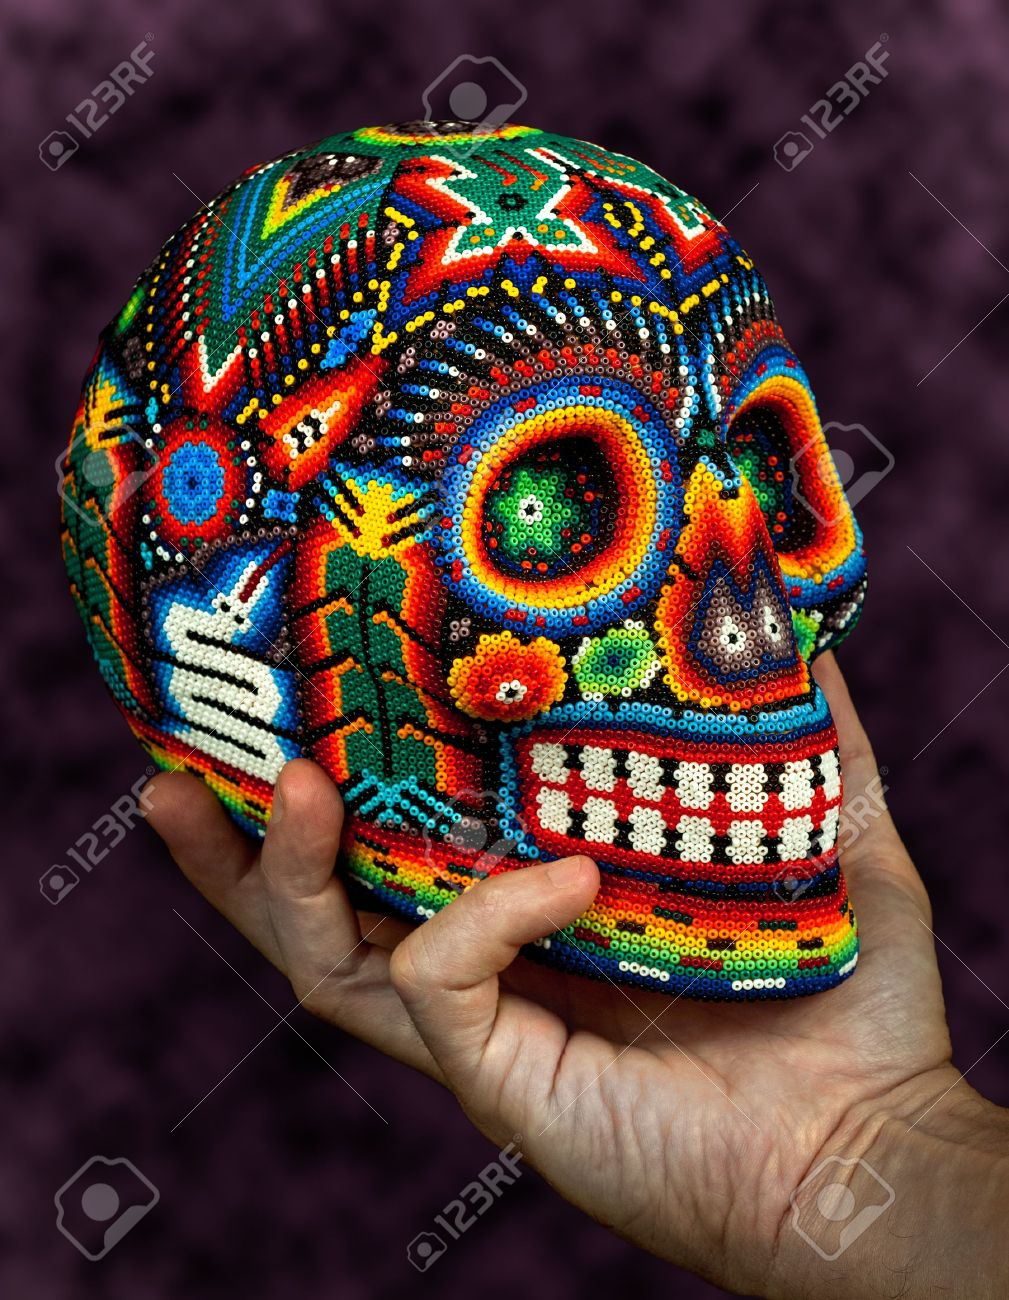 Colorful Beaded Skull From Mexican Traditional Huichol Bead Art Symbol Of The Day